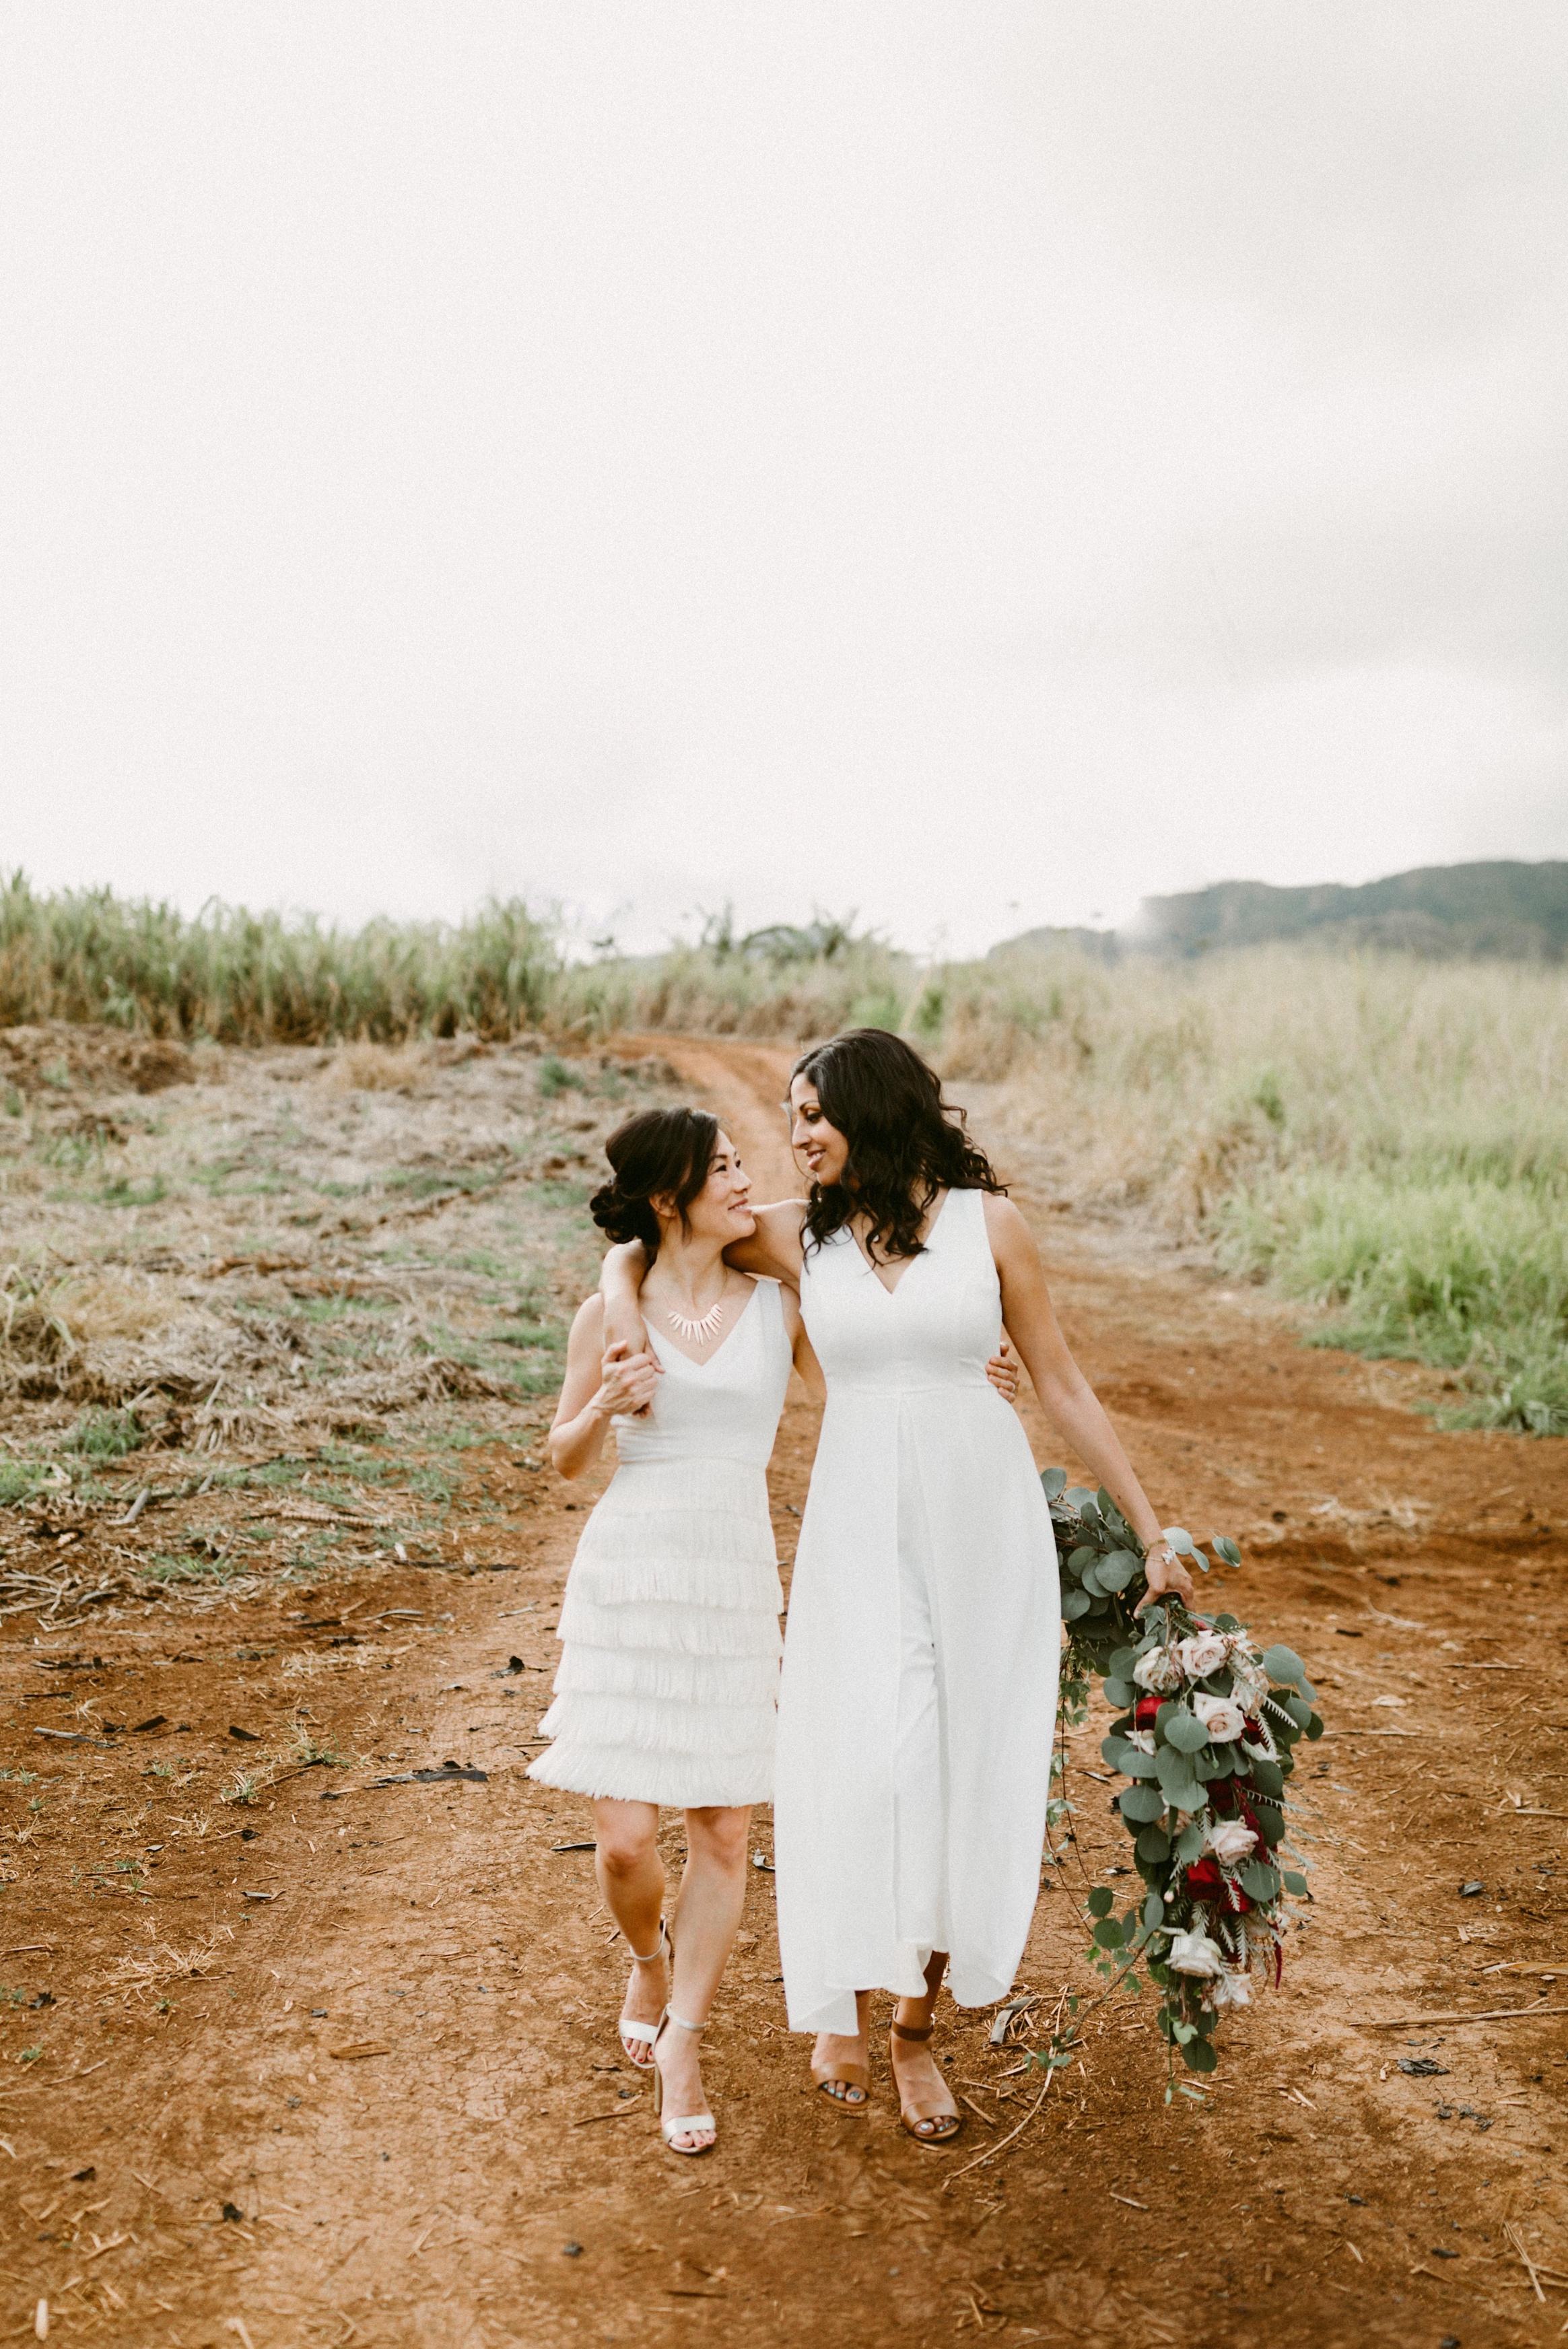 35_Oahu Hawaii Wedding  (121 of 294)_Oahu_sex_Hawaii_same_wedding_elopement_photographer.jpg